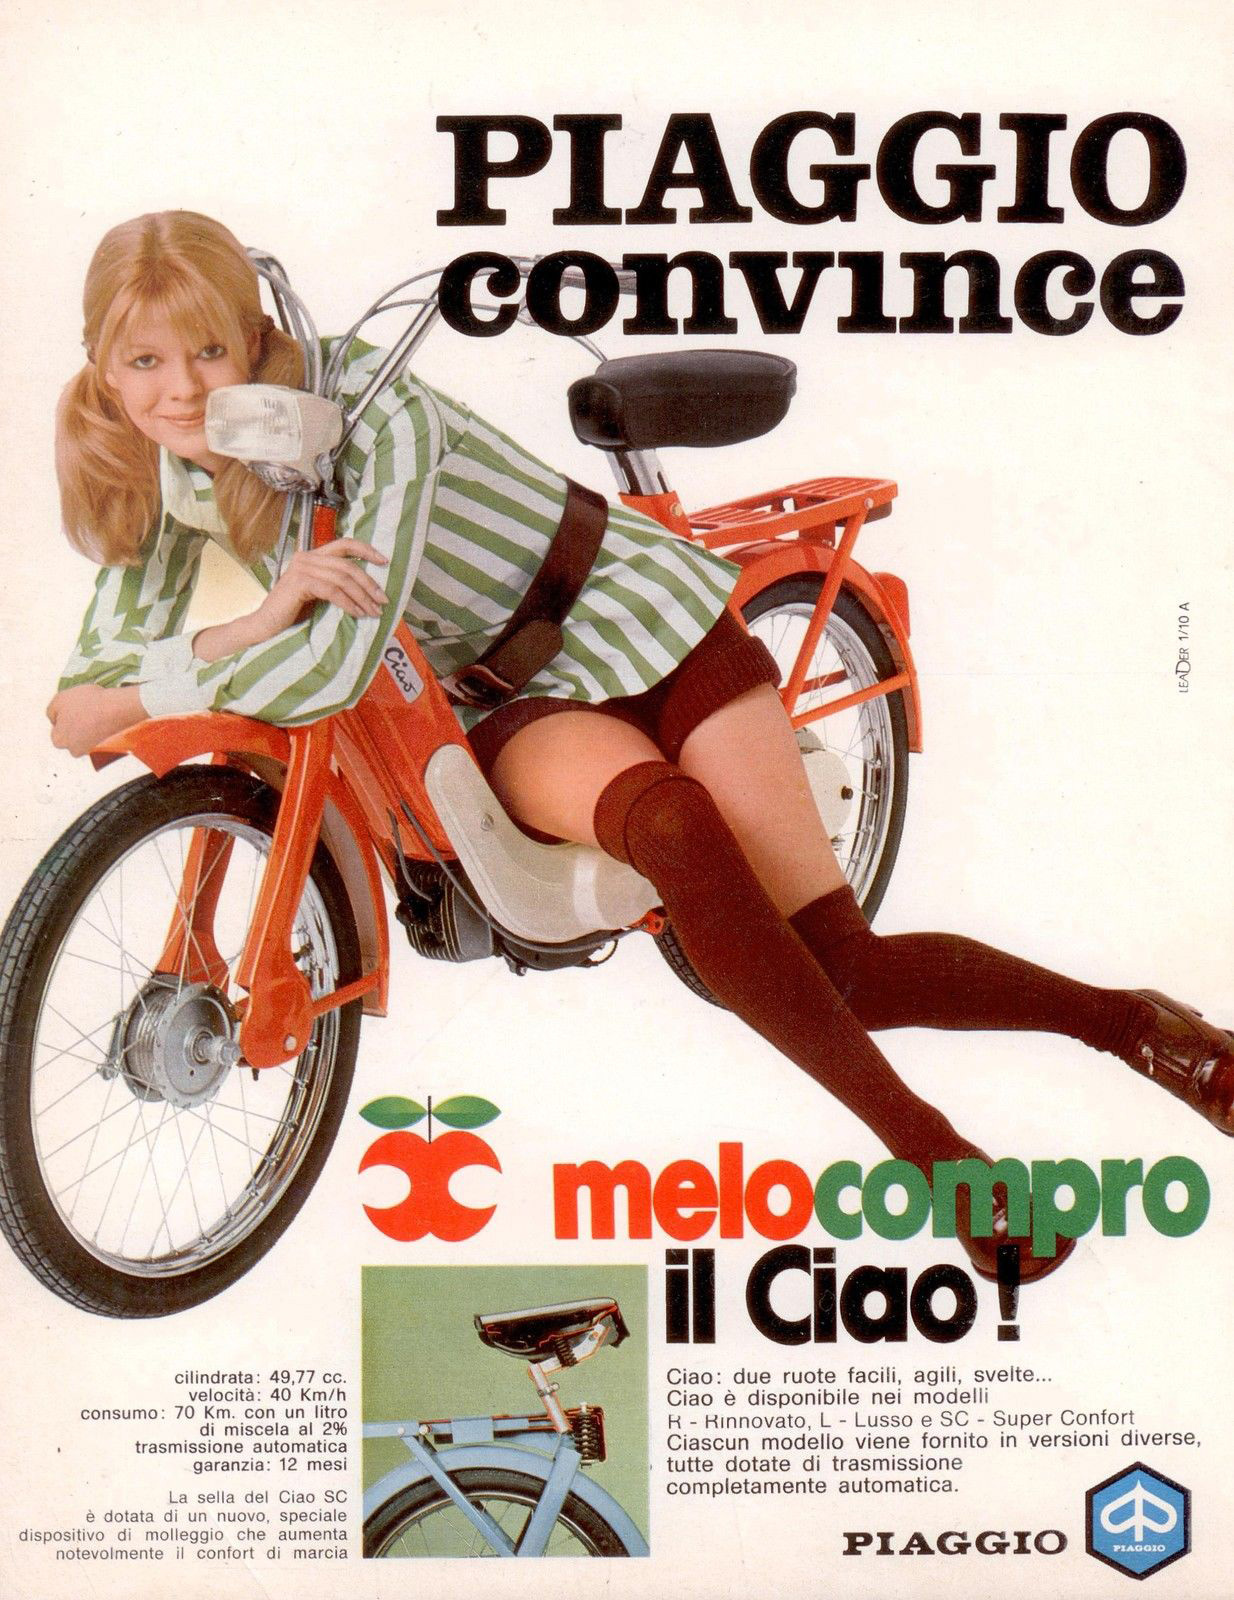 Groovy Chicks Selling Motorbikes 1960s Sexy Swingin Scooter Motorcycle Adverts 373817